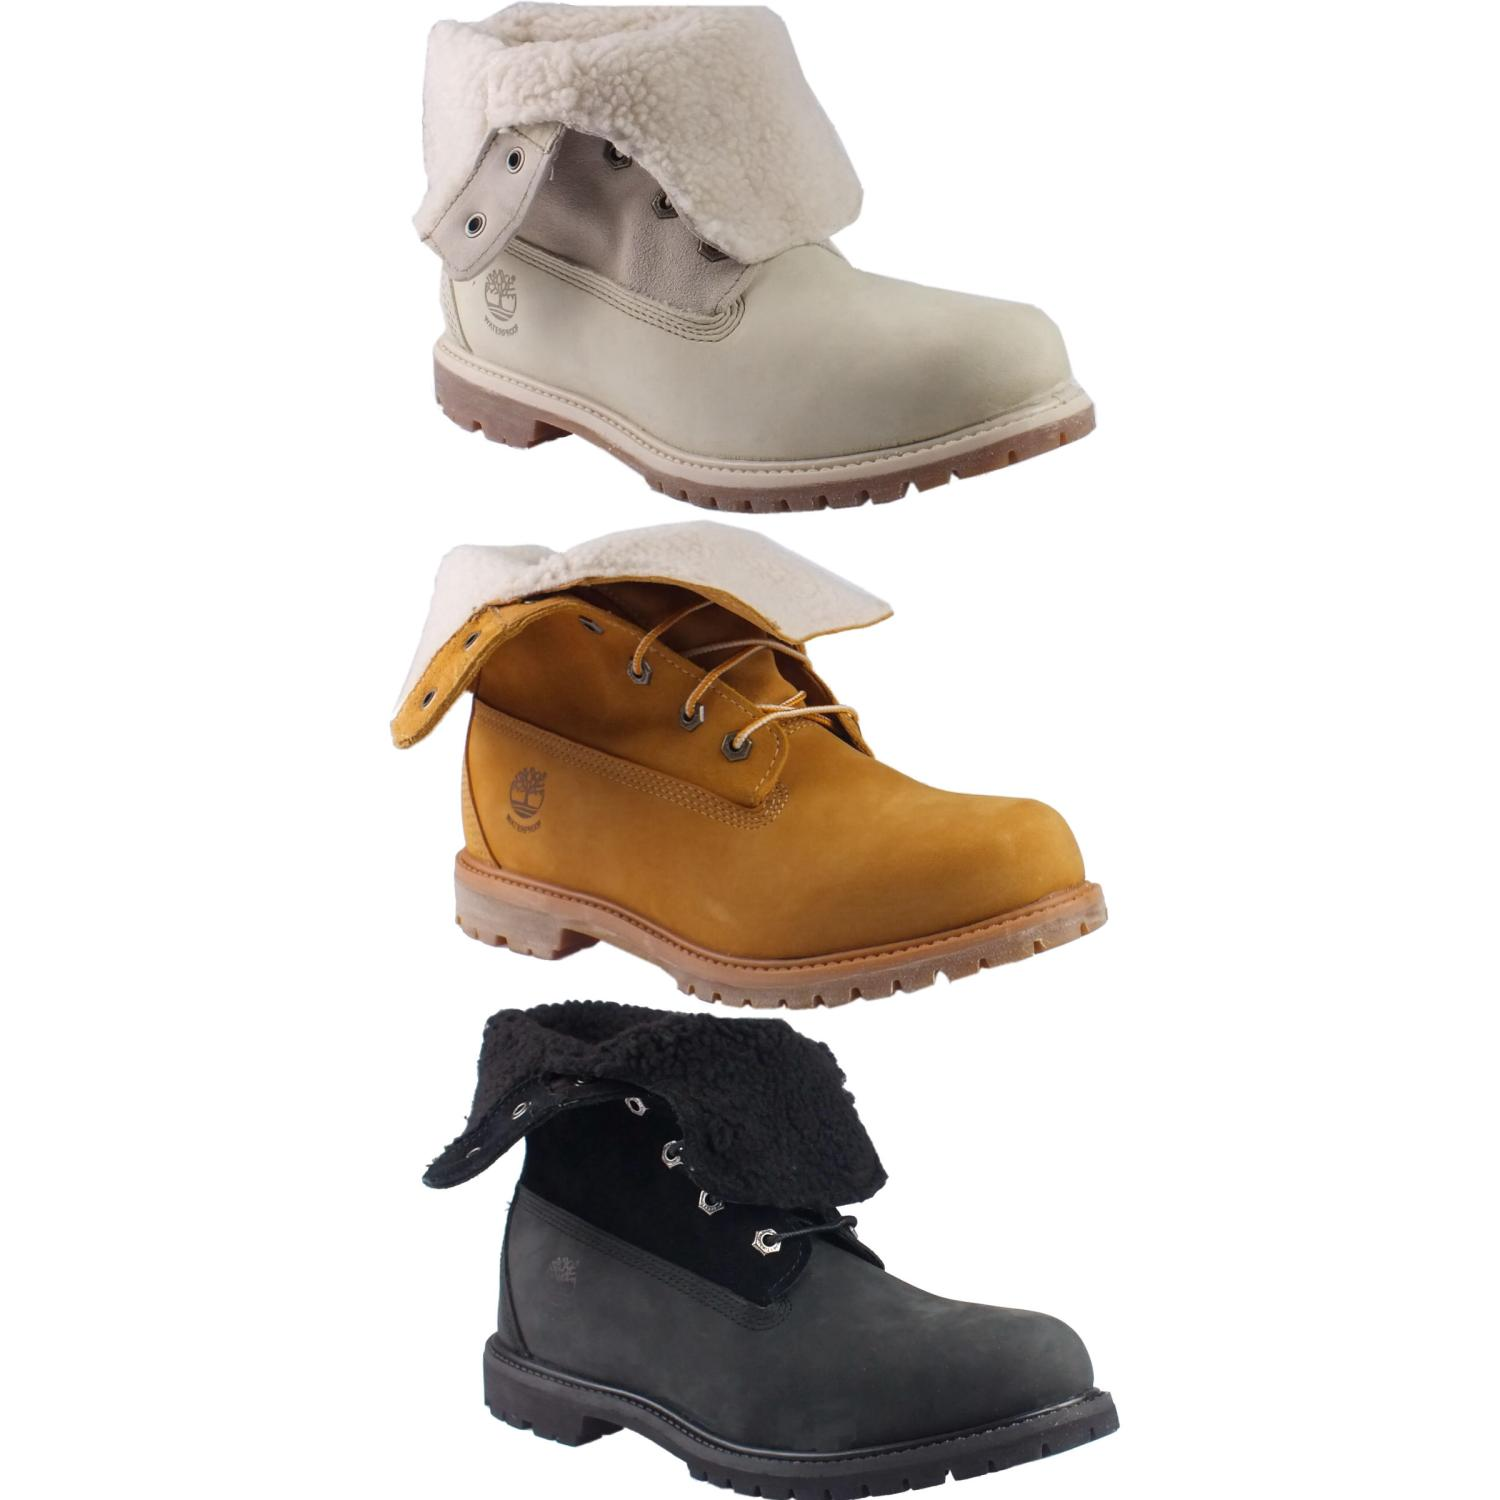 timberland authentics damen kinder schuhe stiefel winterstiefel diverse farben ebay. Black Bedroom Furniture Sets. Home Design Ideas